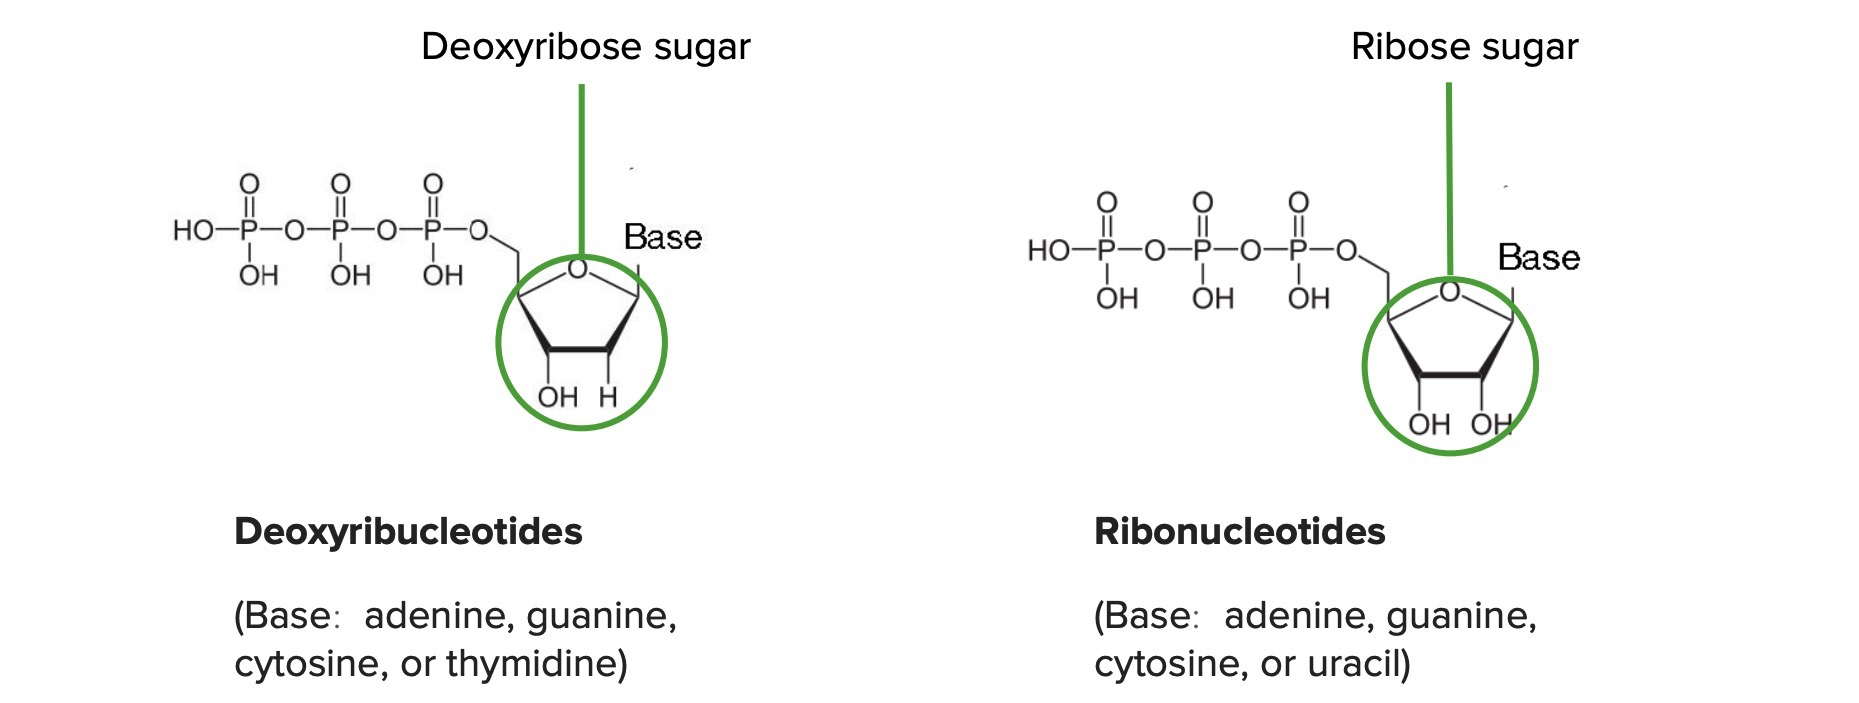 Difference between deoxyribonucleotides and ribonucleotides